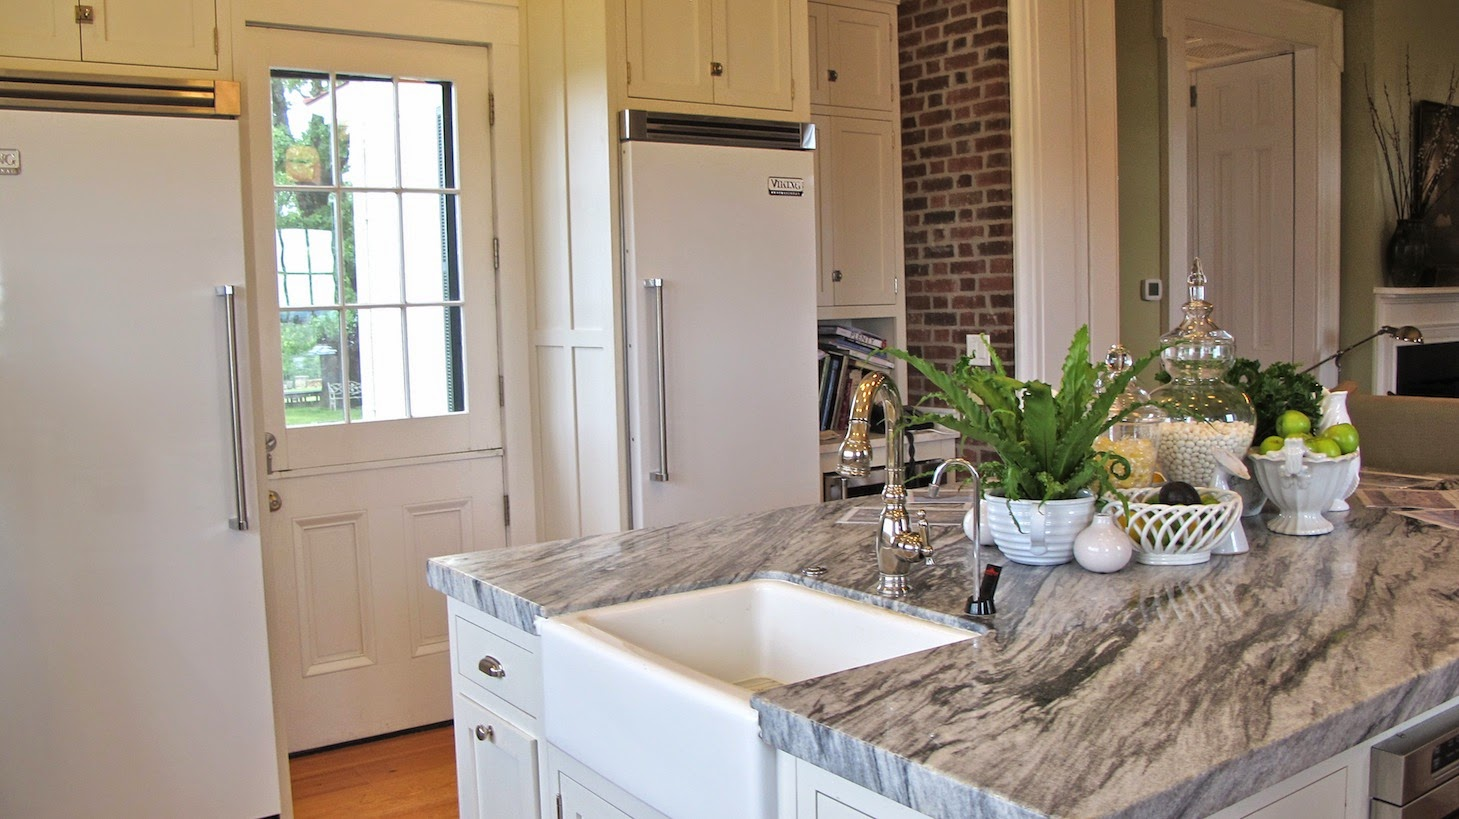 P Allen Smith Moss Mountain Garden Home kitchen shot marble (c)nwafoodie